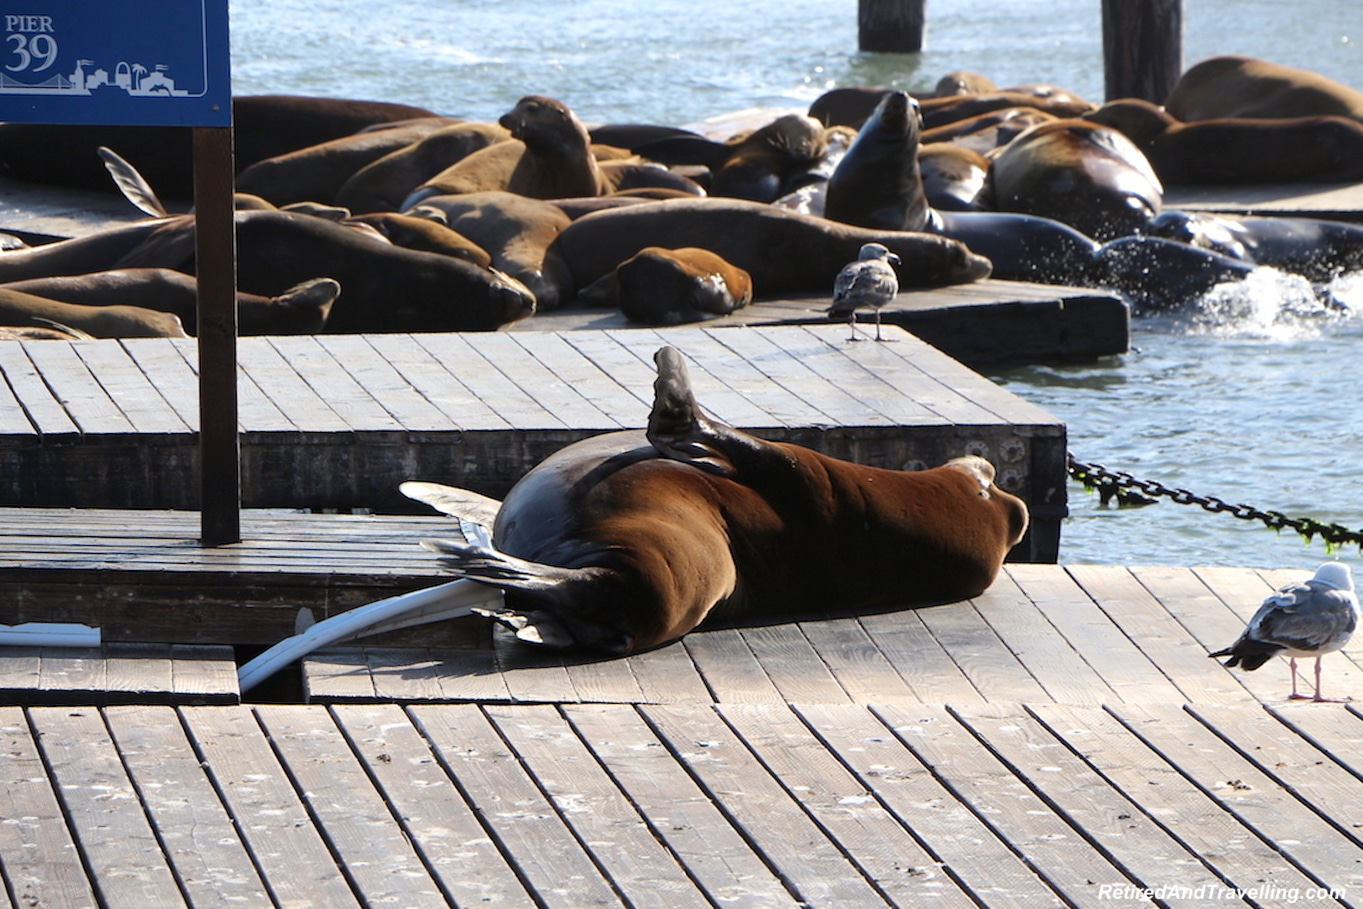 San Francisco Pier 39 Seals - West Coast Itinerary.jpg